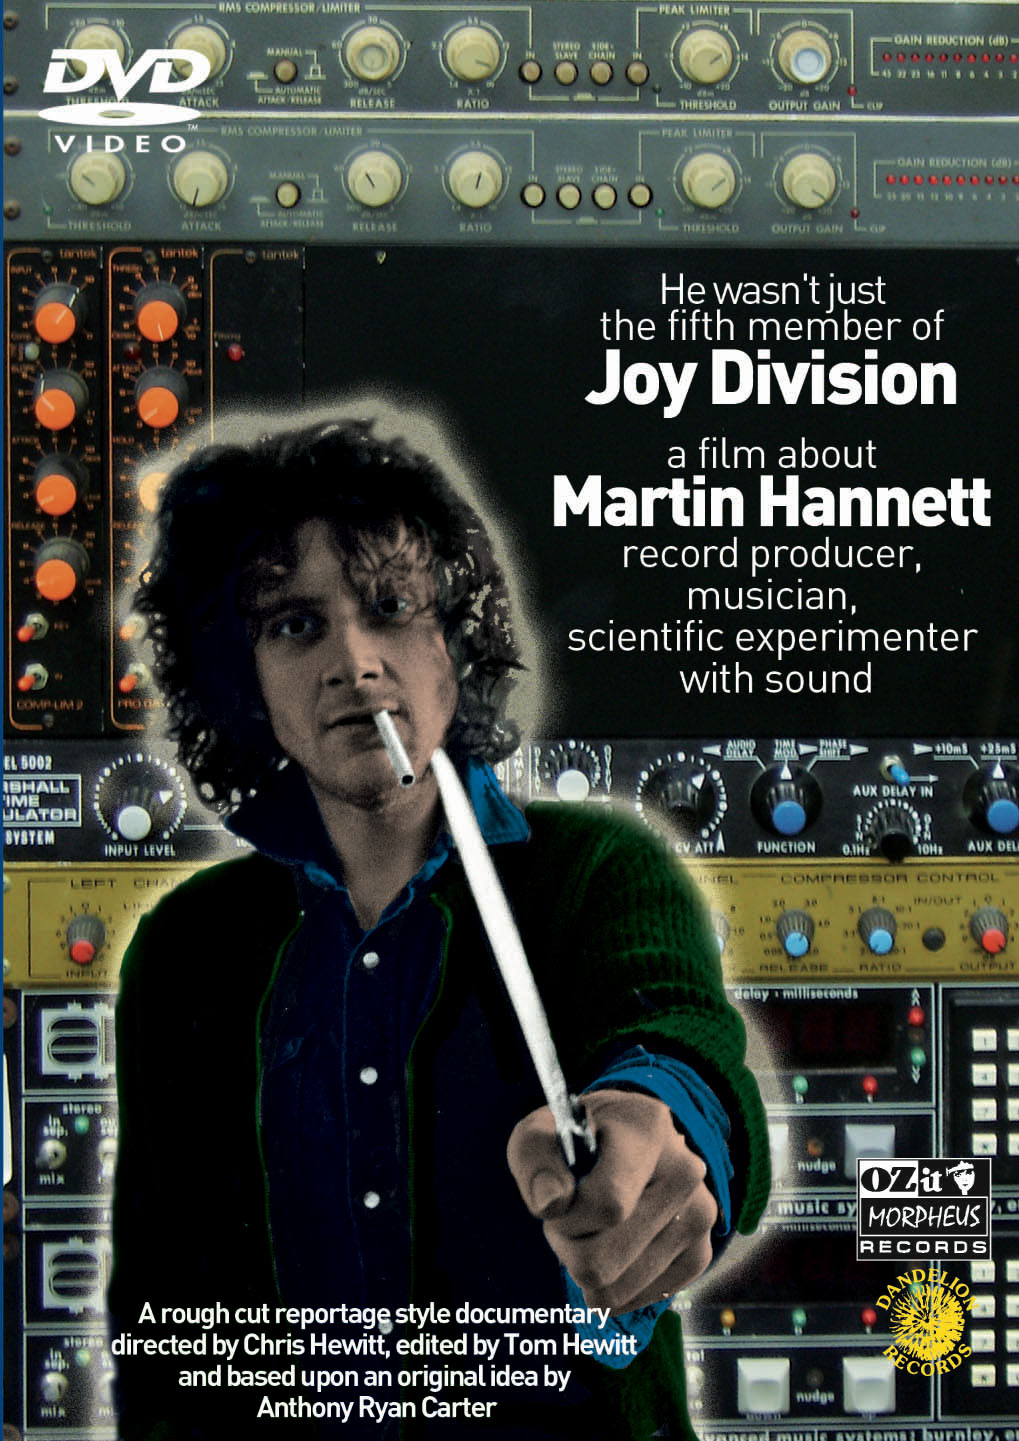 He wasn't just the 5th member of Joy Division - a film about Martin Hannett, record producer, musician, scientific experimenter with sound